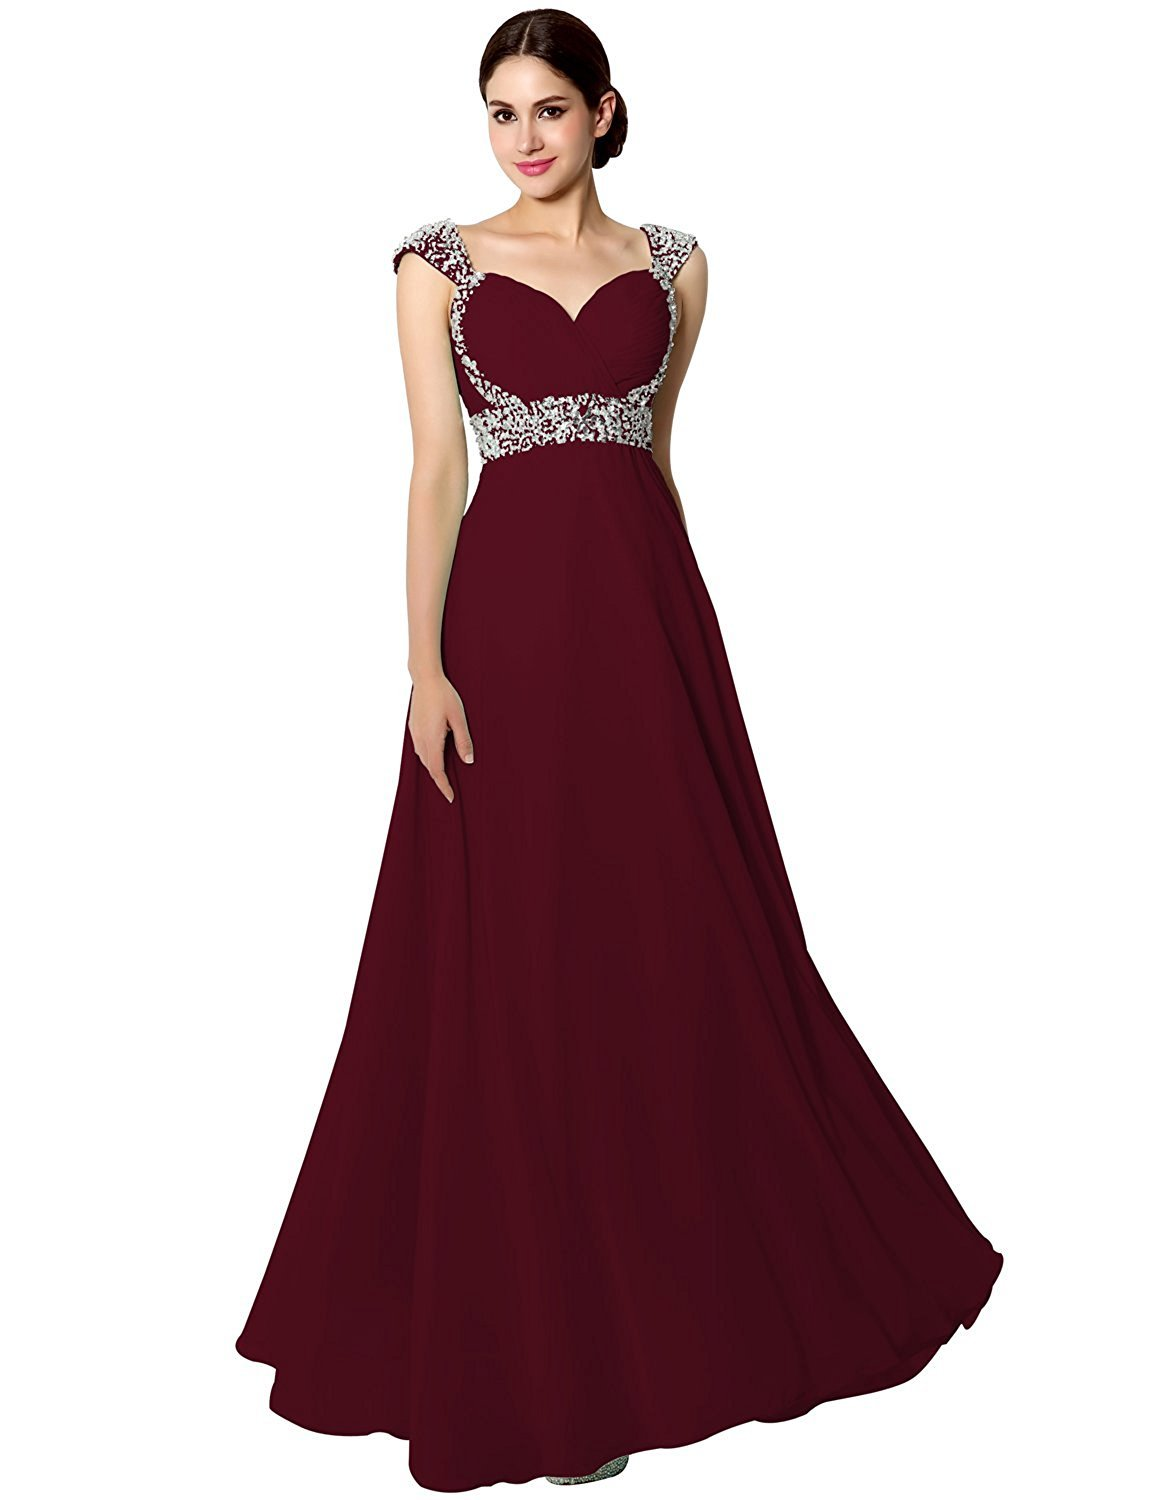 Prom Dresses - Bridesmaid Dresses Long V Neck Backless Split Prom Formal Evening Gowns For Women